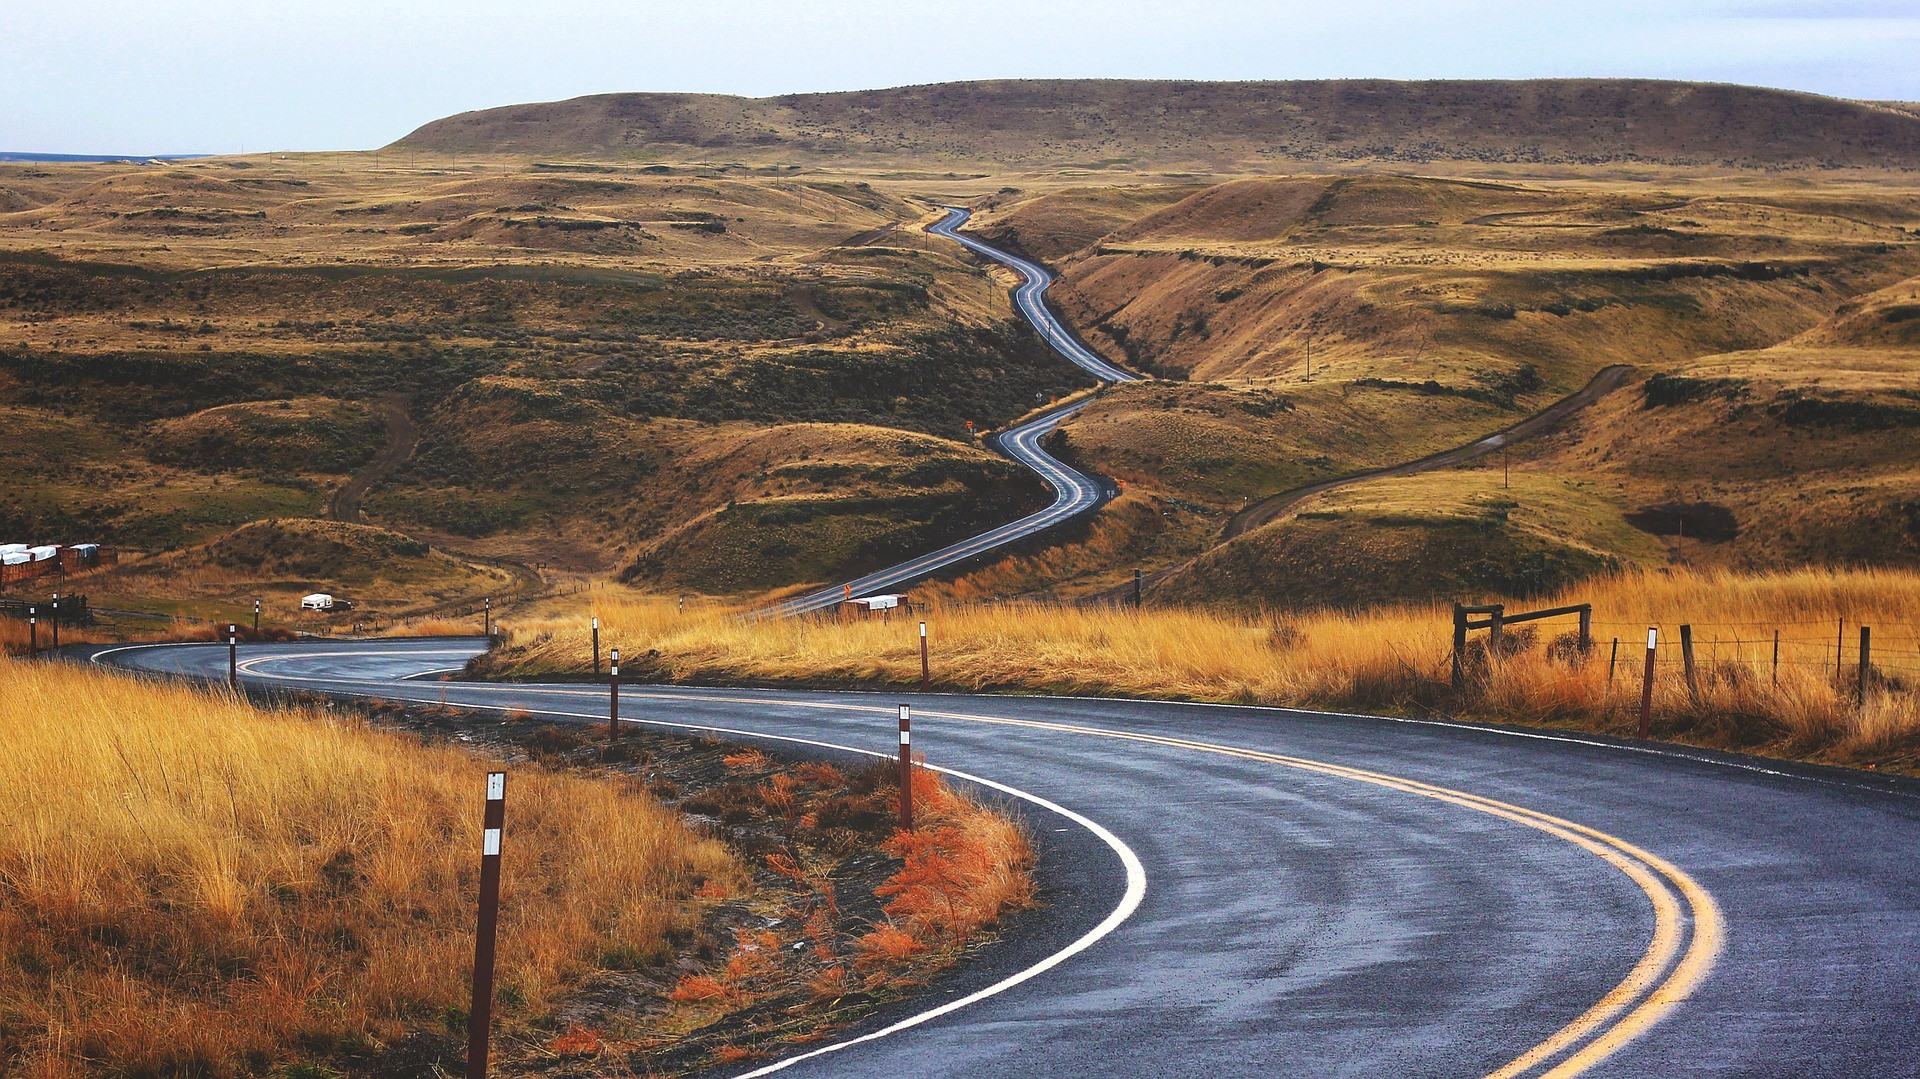 The Long and Winding Road of Life | by Brian Almeida | Medium